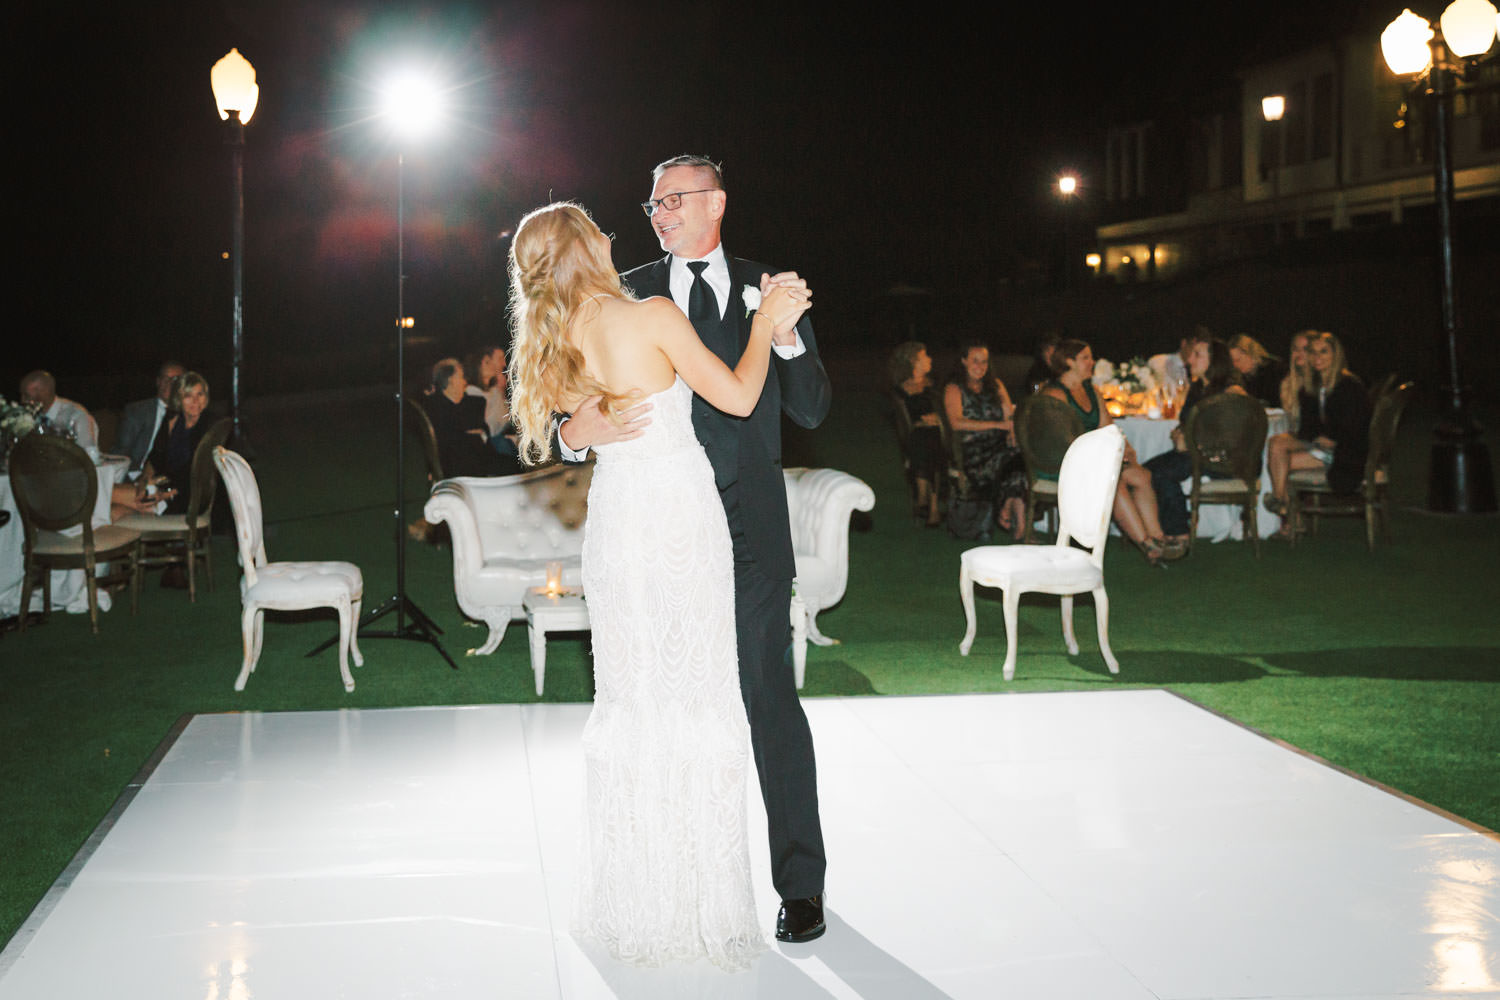 Nighttime al fresco reception featuring father daughter first dance. Del Mar Country Club Wedding by Cavin Elizabeth Photography